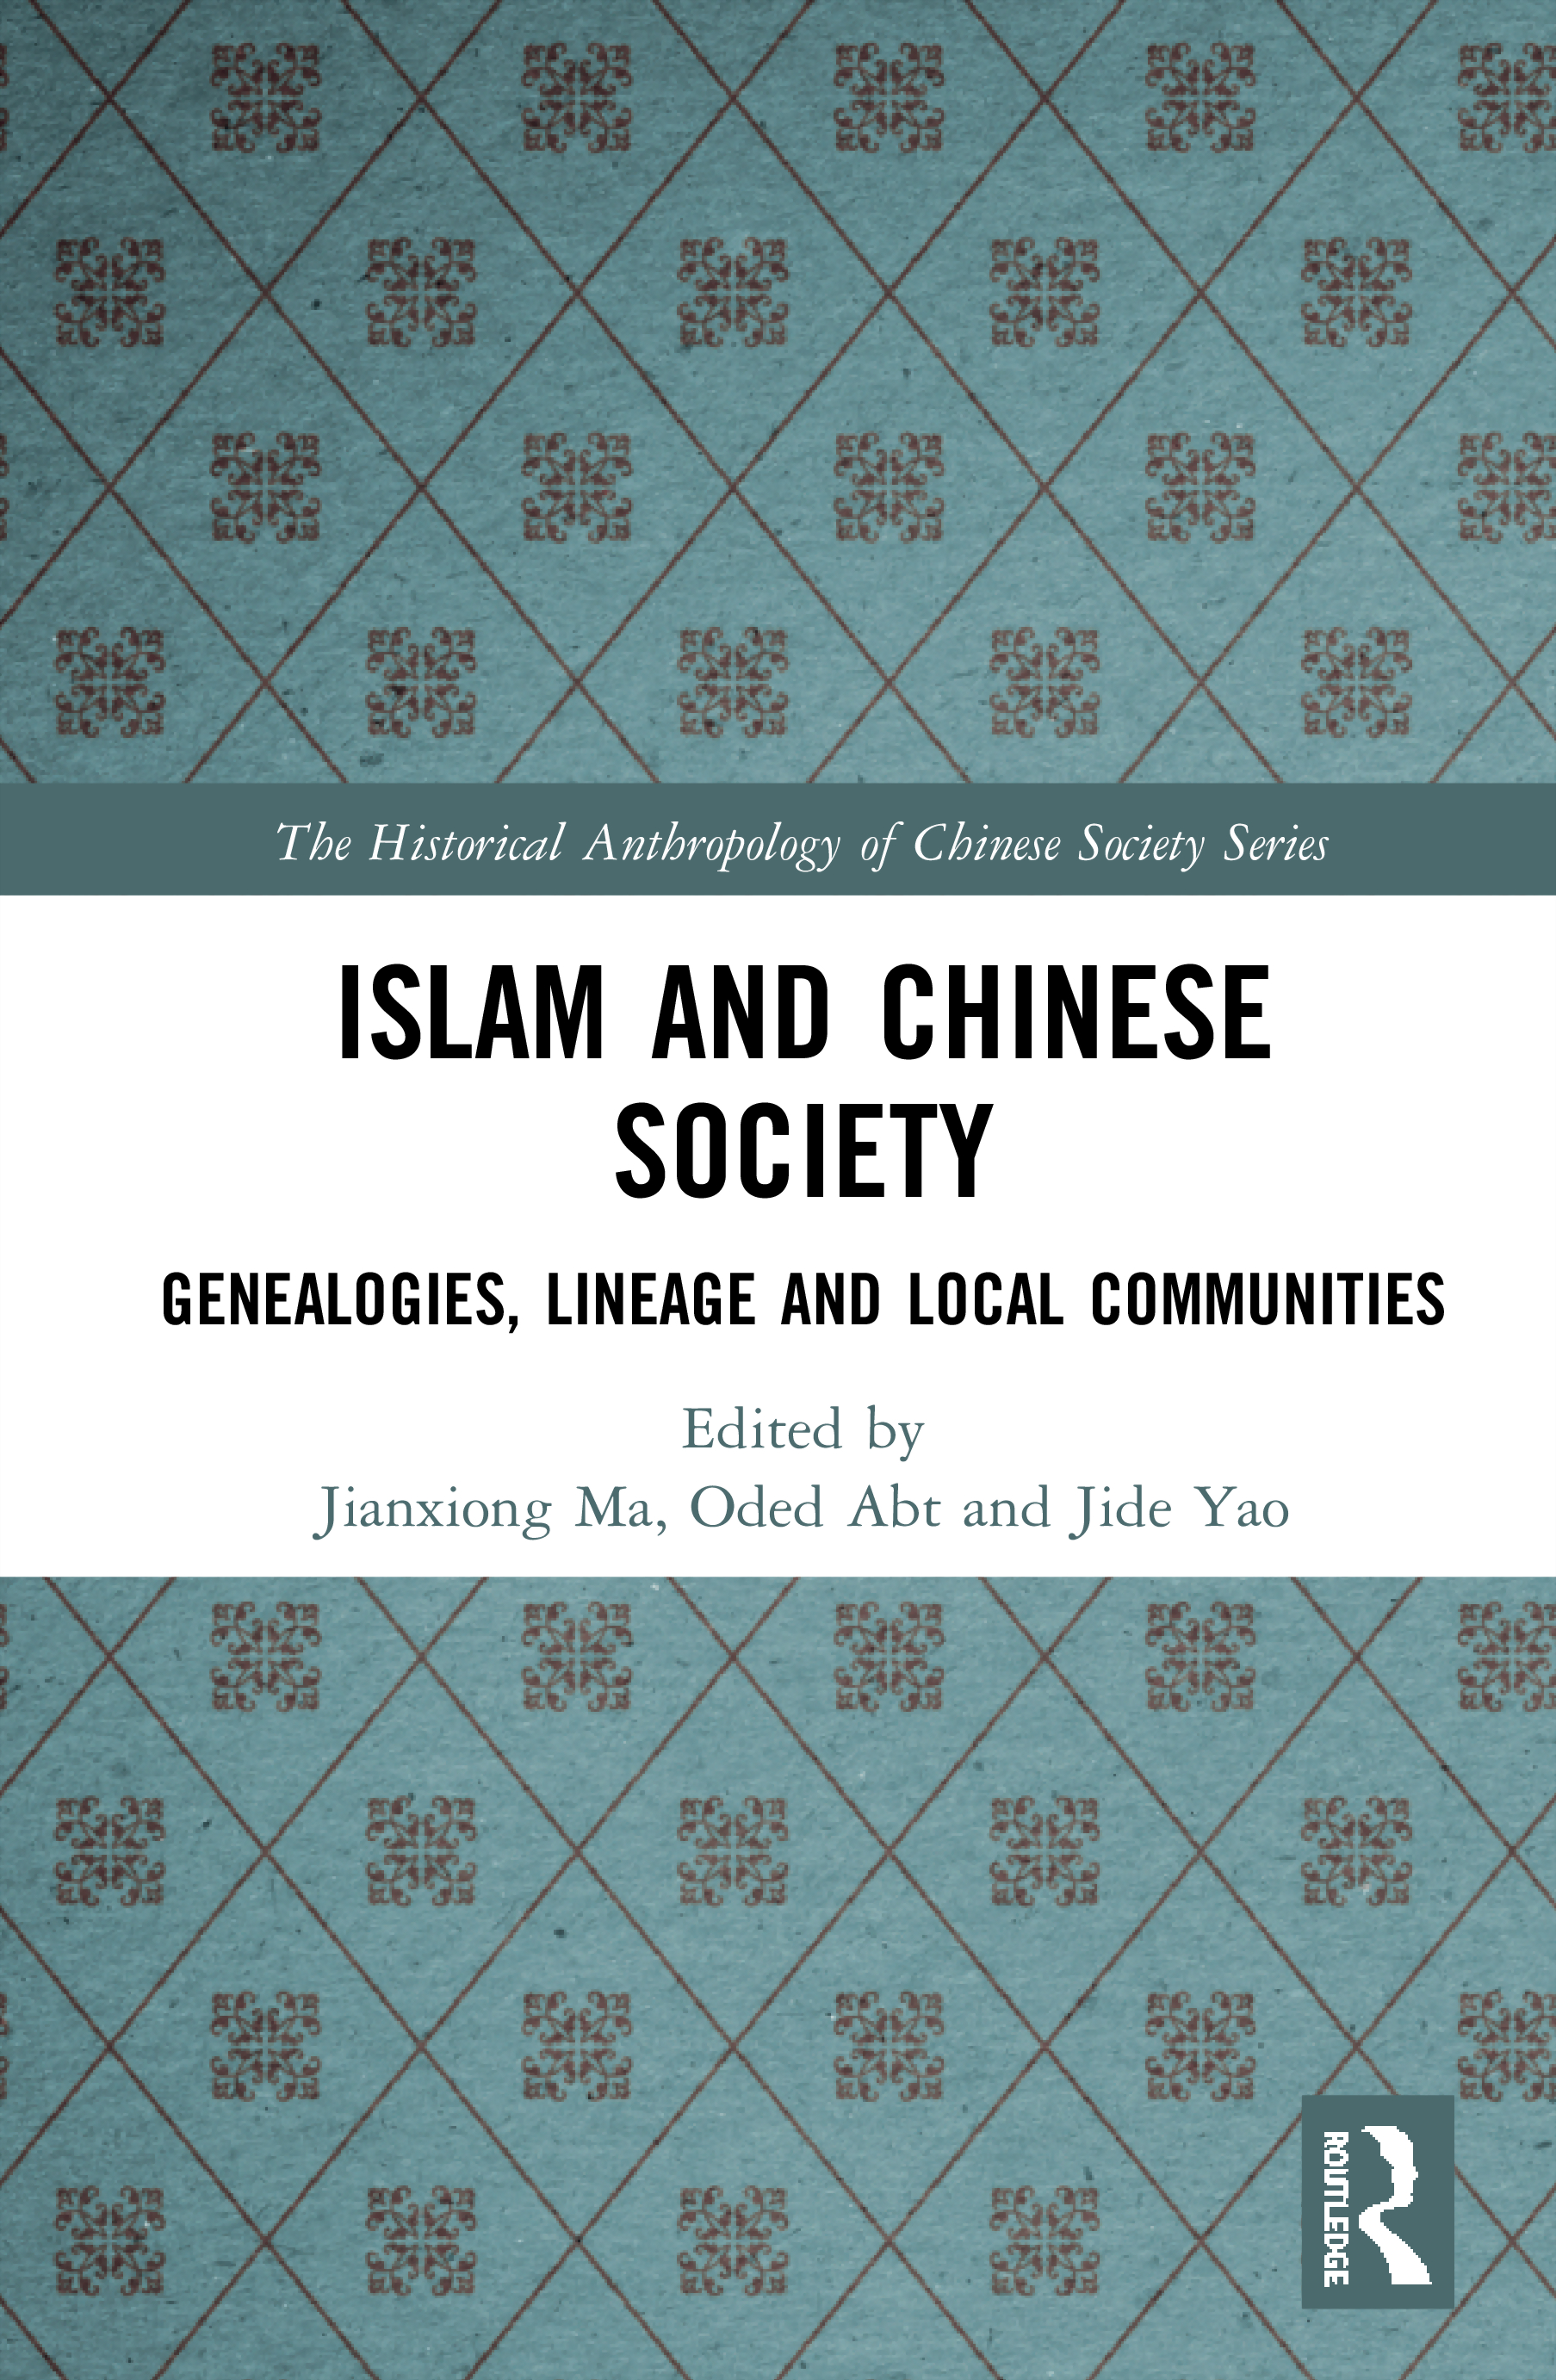 Islam and Chinese Society: Genealogies, Lineage and Local Communities book cover